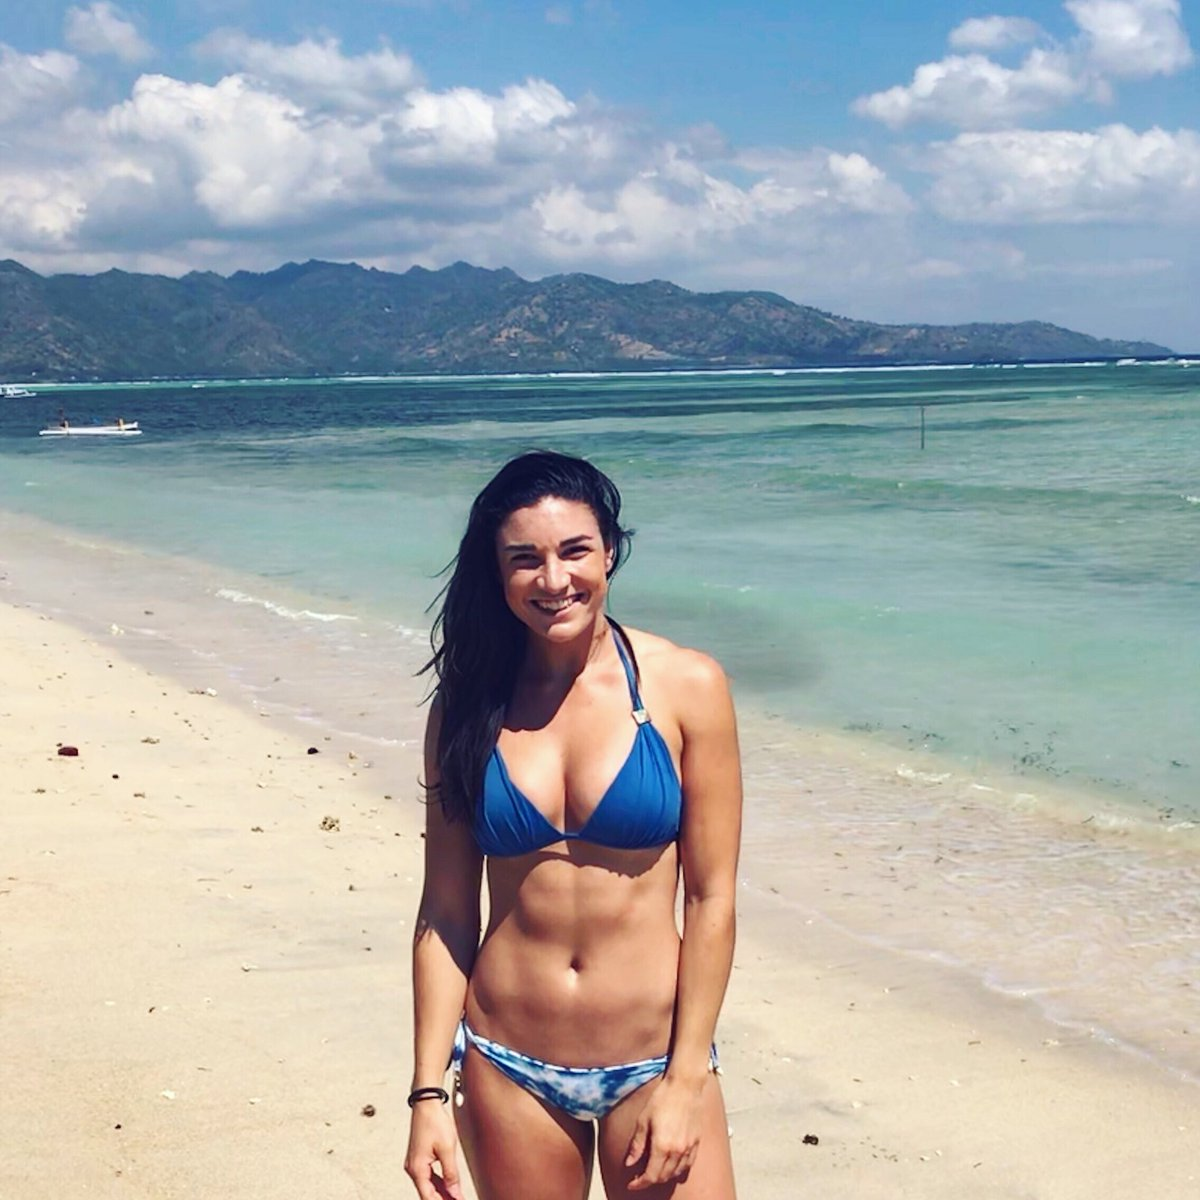 Michelle Jenneke nudes (81 foto and video), Tits, Fappening, Twitter, cleavage 2015